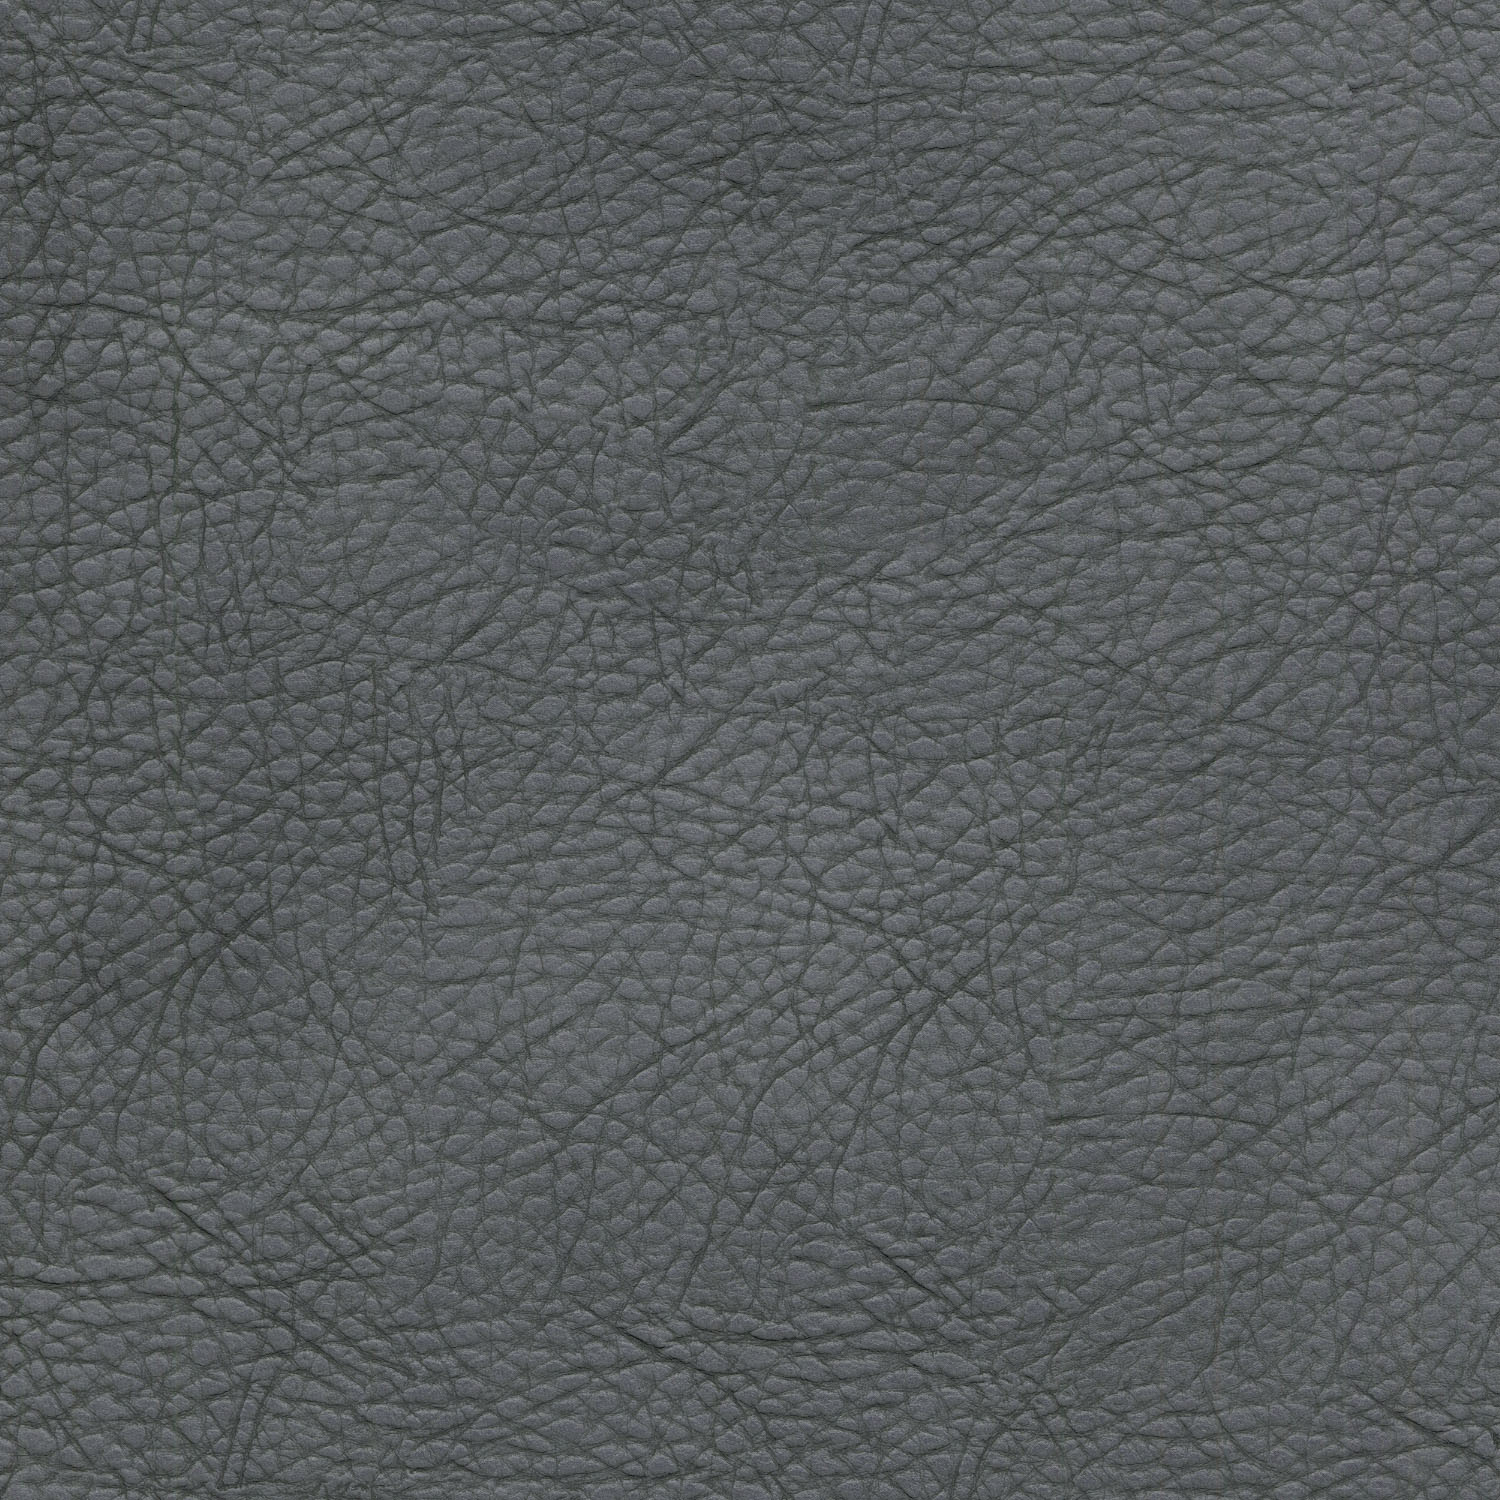 Richloom Studio Multi-Purpose Decor Vinyl 54\u0022-Jumanji Gunmetal